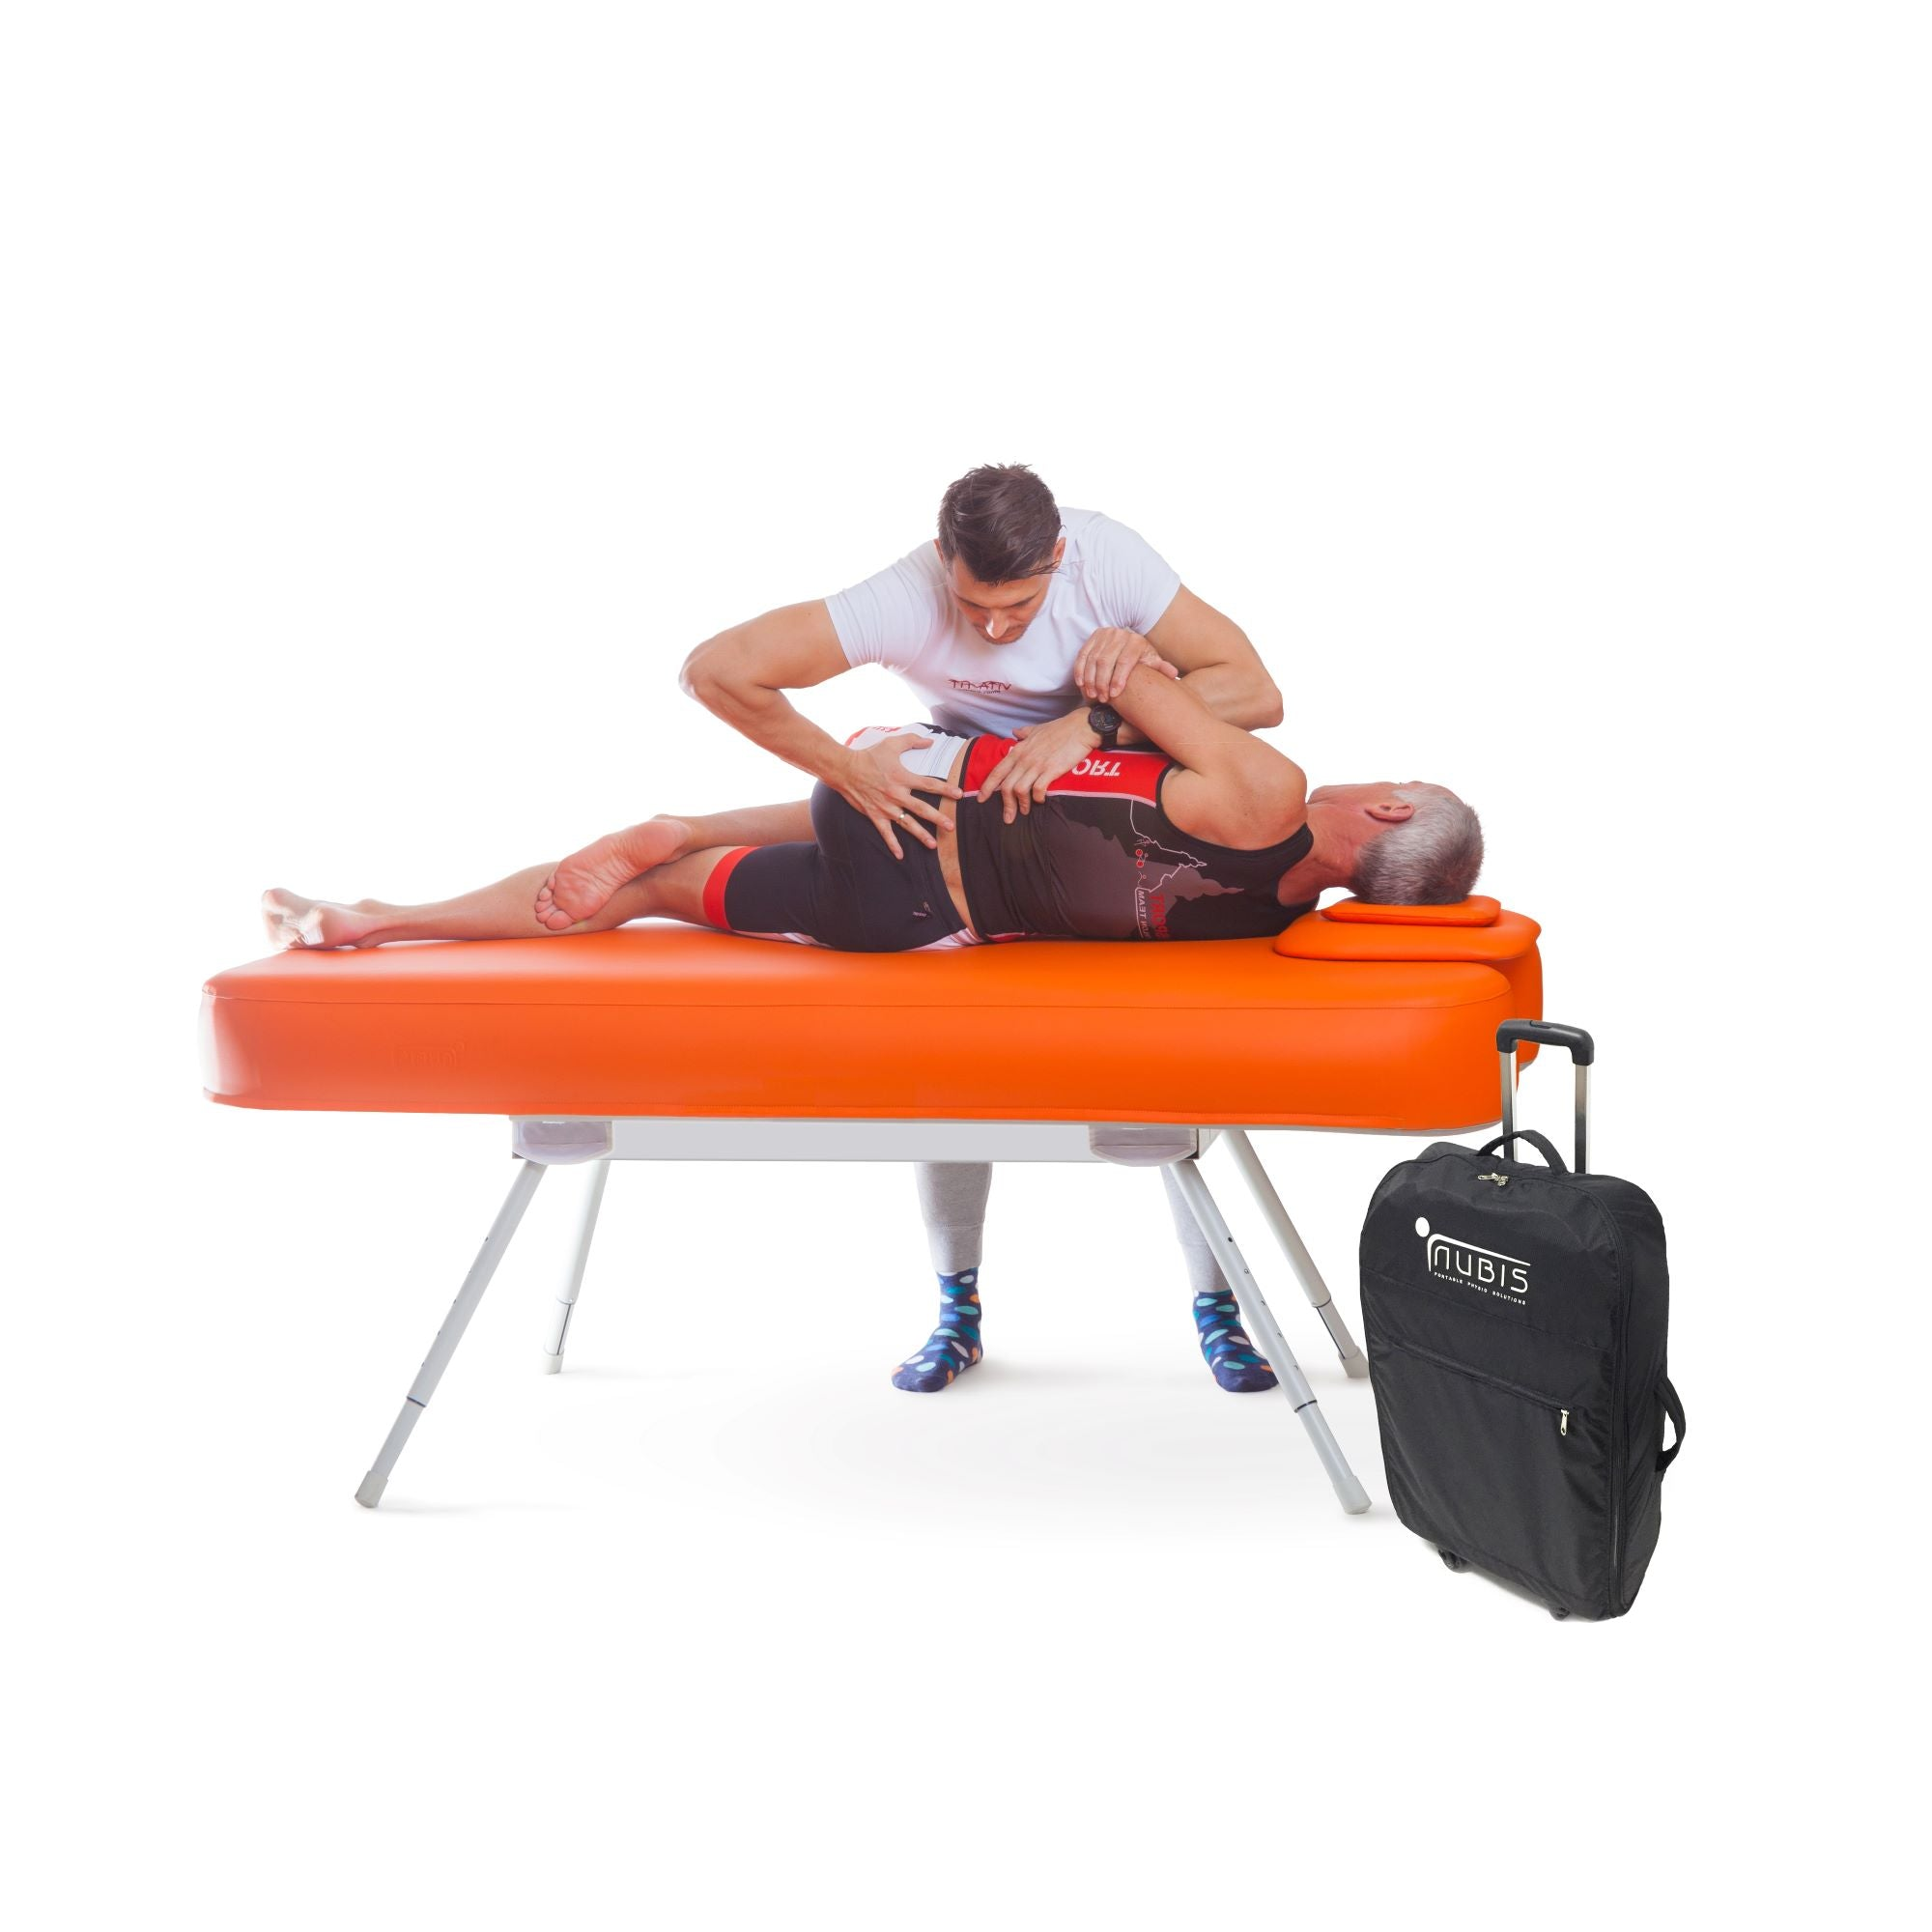 NubisPro - Portable physiotherapy table - Full System